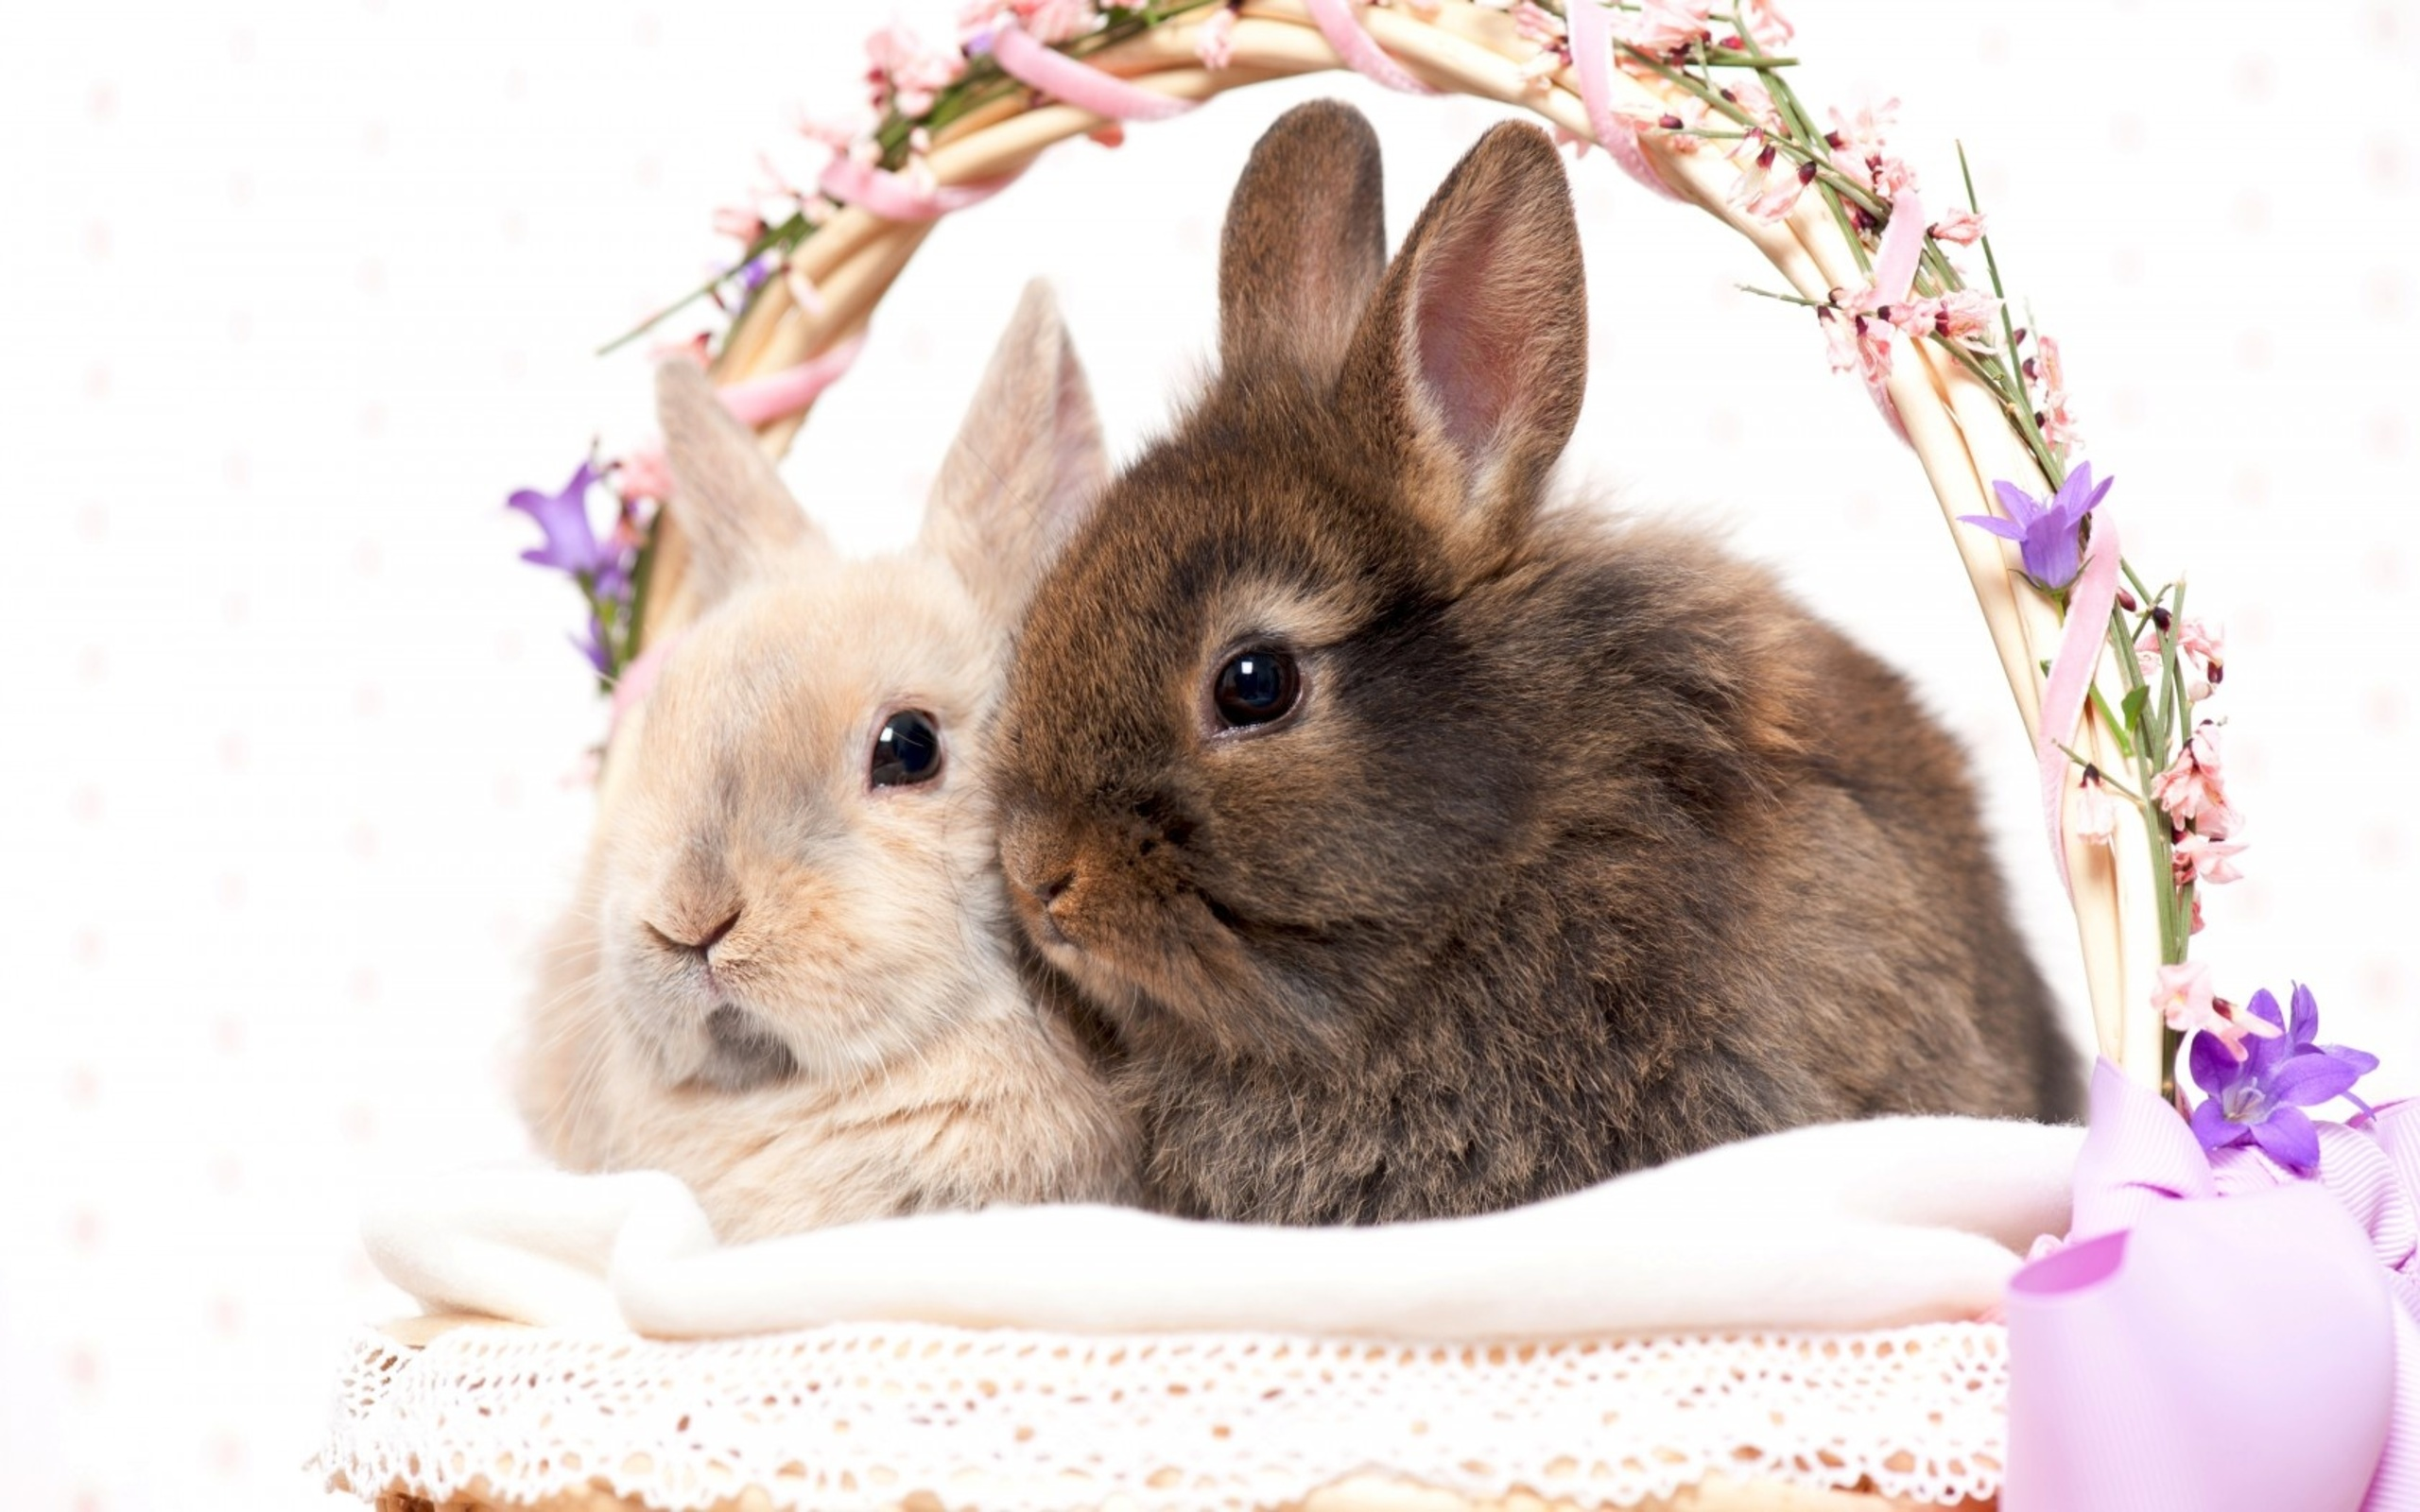 274 Rabbit Hd Wallpapers Background Images Wallpaper Abyss